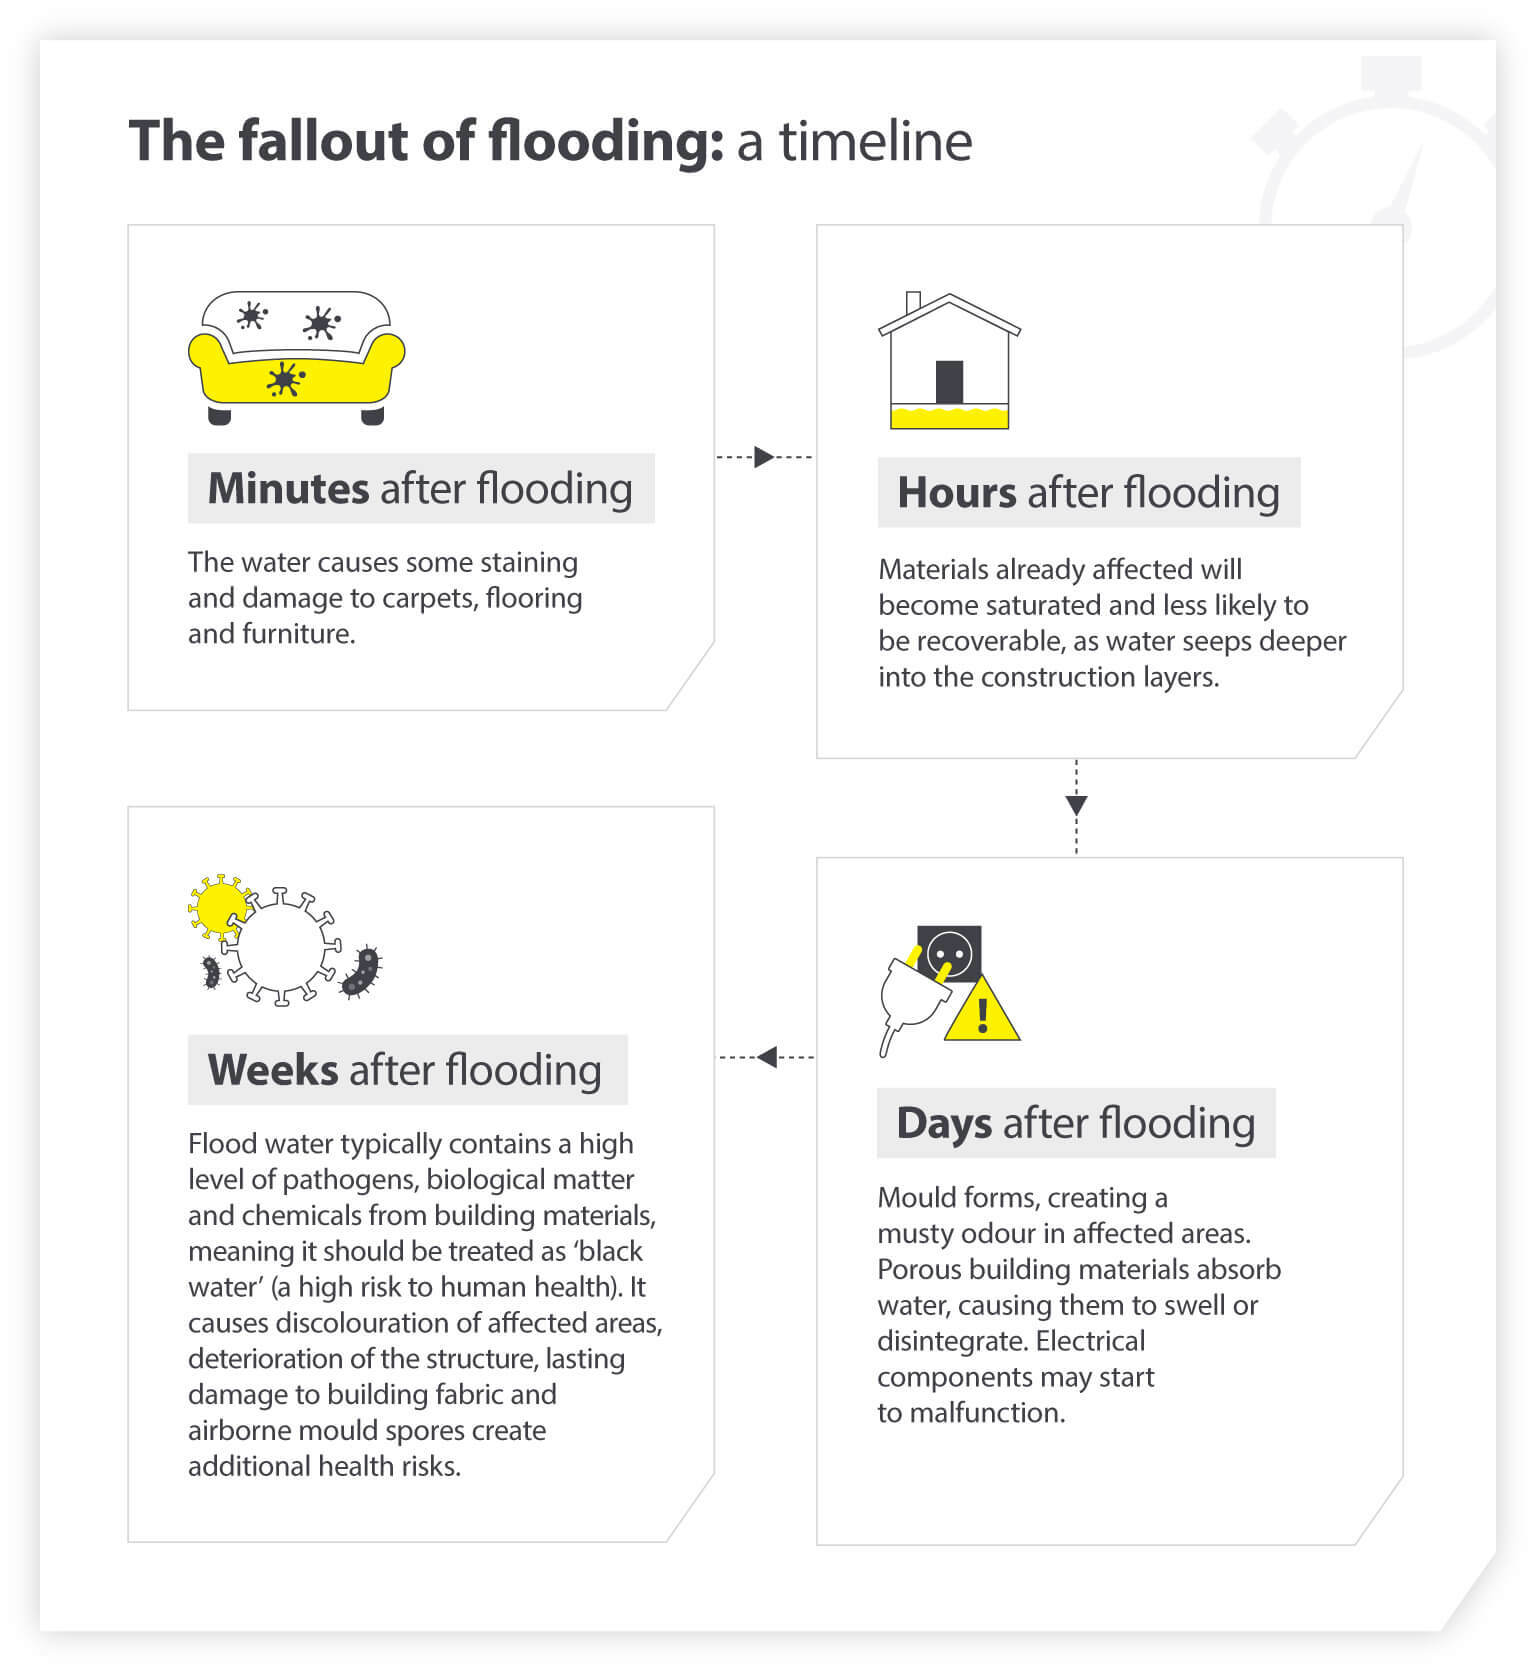 Fallout of flooding timeline